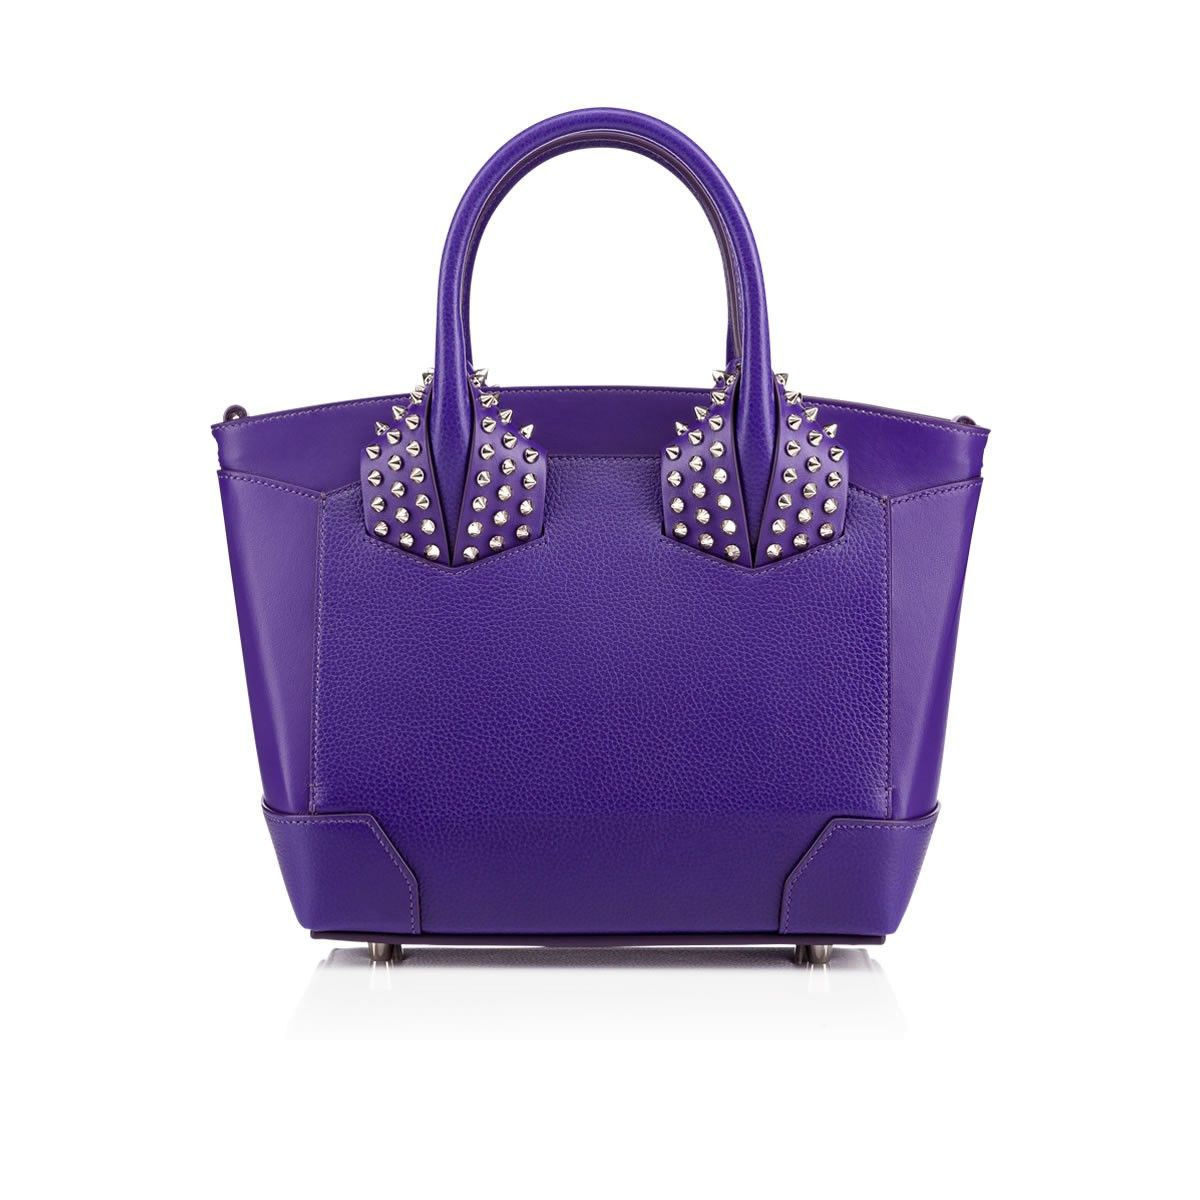 Eloise Small Two Handle Bag from Christian Louboutin in this beautiful purple